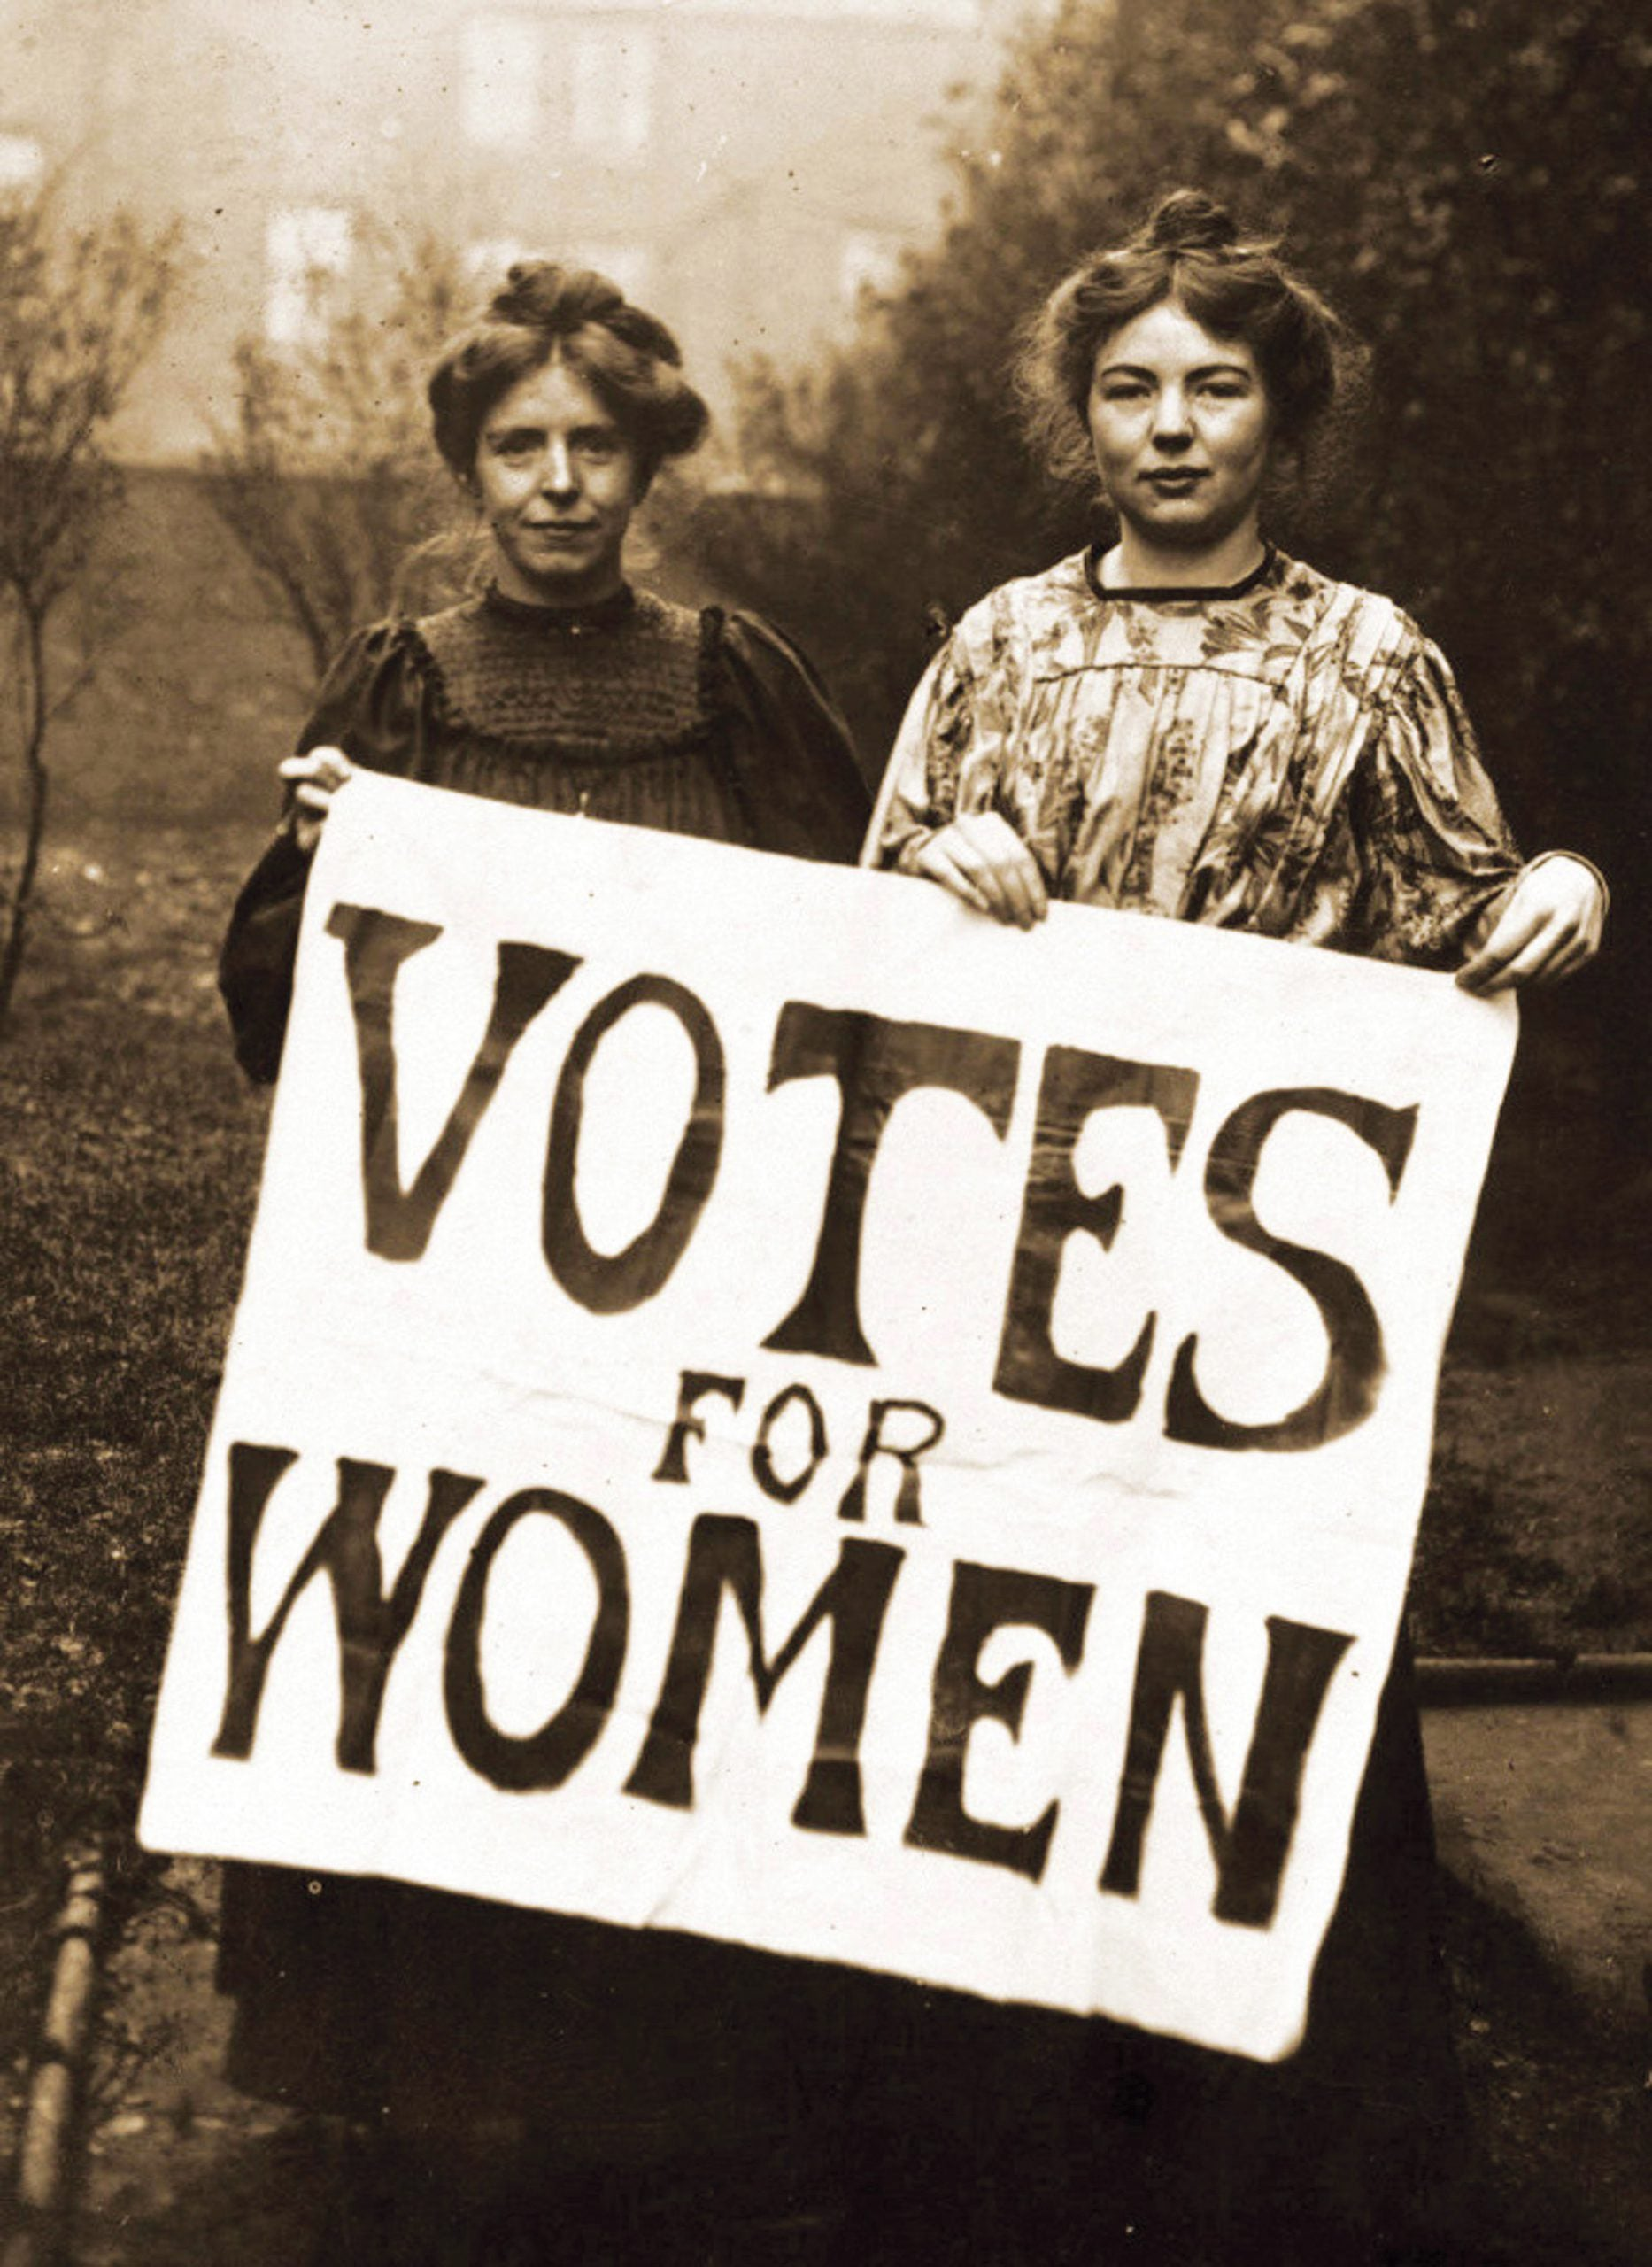 In praise of history's difficult women